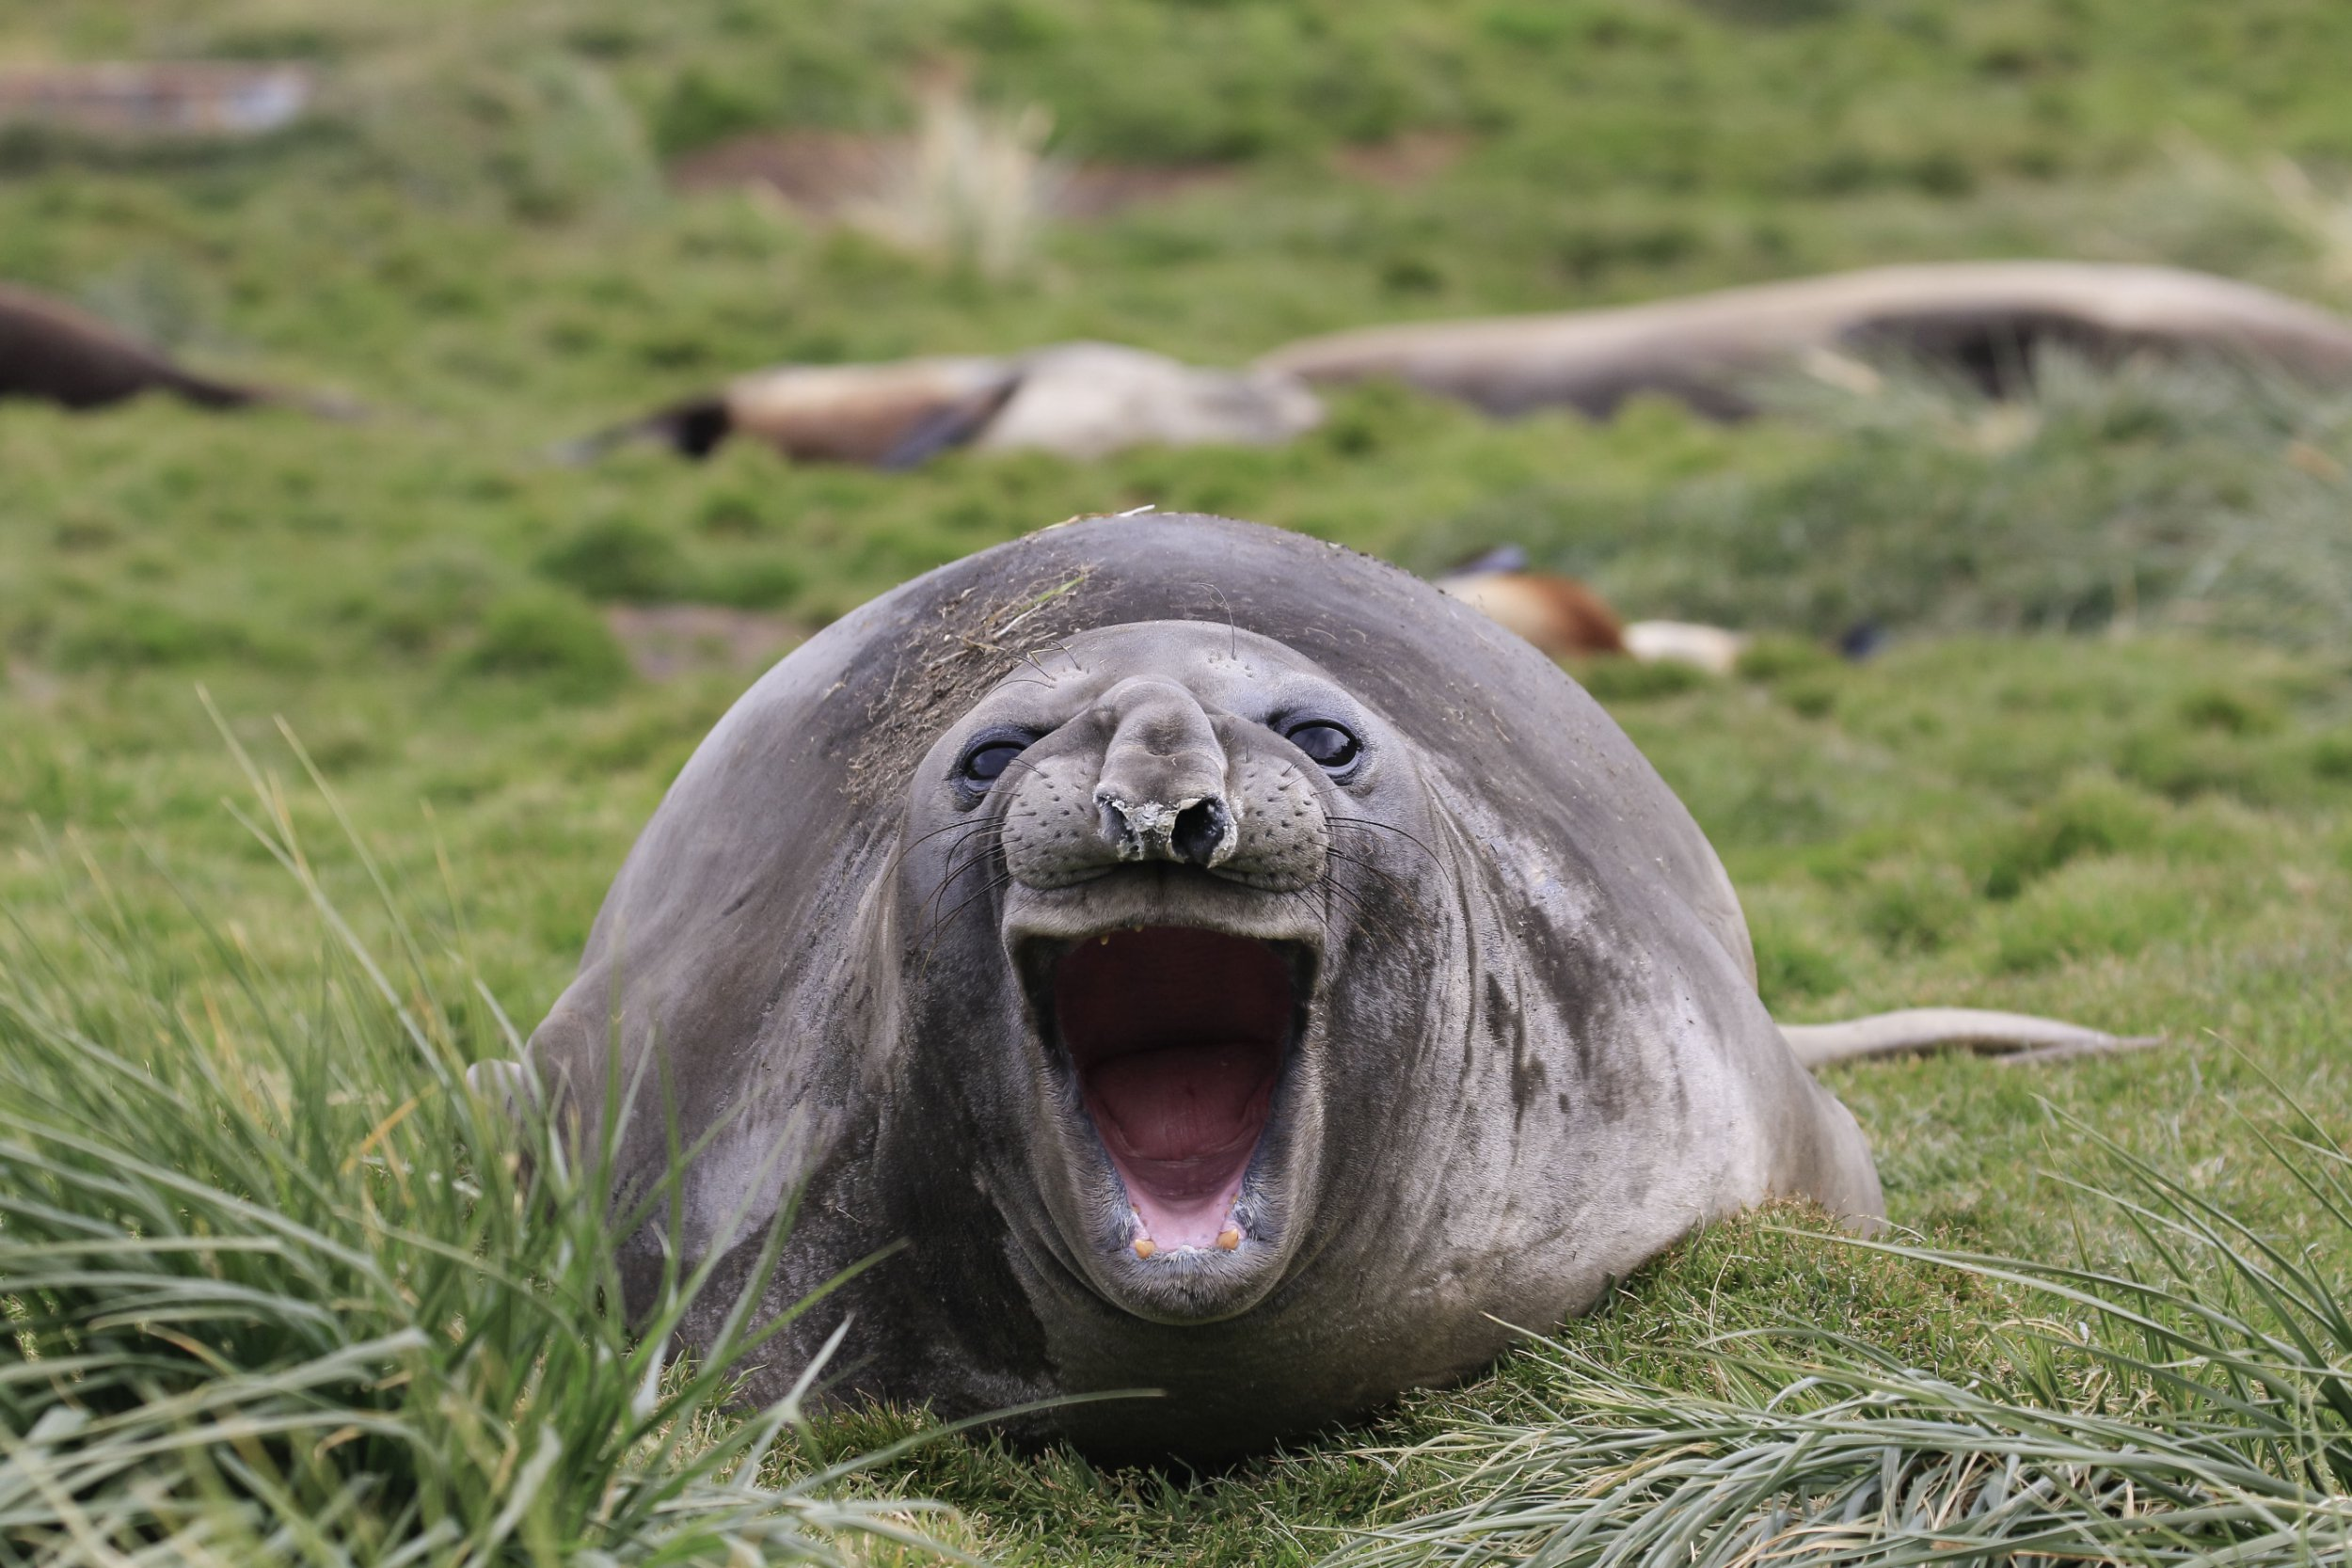 *** EXCLUSIVE *** SEPTEMBER 2018: Comedy Wildlife Photography Award Finalist, a seal with its mouth open, September 2018. FROM WALTZING polar bears, to a hippopotamus that should have gone to Specsavers, the world?s funniest animal awards have their finalists - and this year you can vote for your favourite. Out of thousands of entries, these are the final forty-one which have made the cut - and they are guaranteed to make you chuckle. The Comedy Wildlife Photography Awards were founded by wildlife photographers and enthusiasts Tom Sullam and Paul Joynson-Hicks. The competition works alongside the Born Free Foundation to highlight a more serious matter; the importance of conserving our planet?s beautiful wildlife. Wildlife photographer and co-founder Tom Sullam said: ?In just three years this competition has gone from hilarious to utterly ridiculous humour - all provided to us by these fantastic animals.? PHOTOGRAPH BY Amy Kennedy / CWPA / Barcroft Images